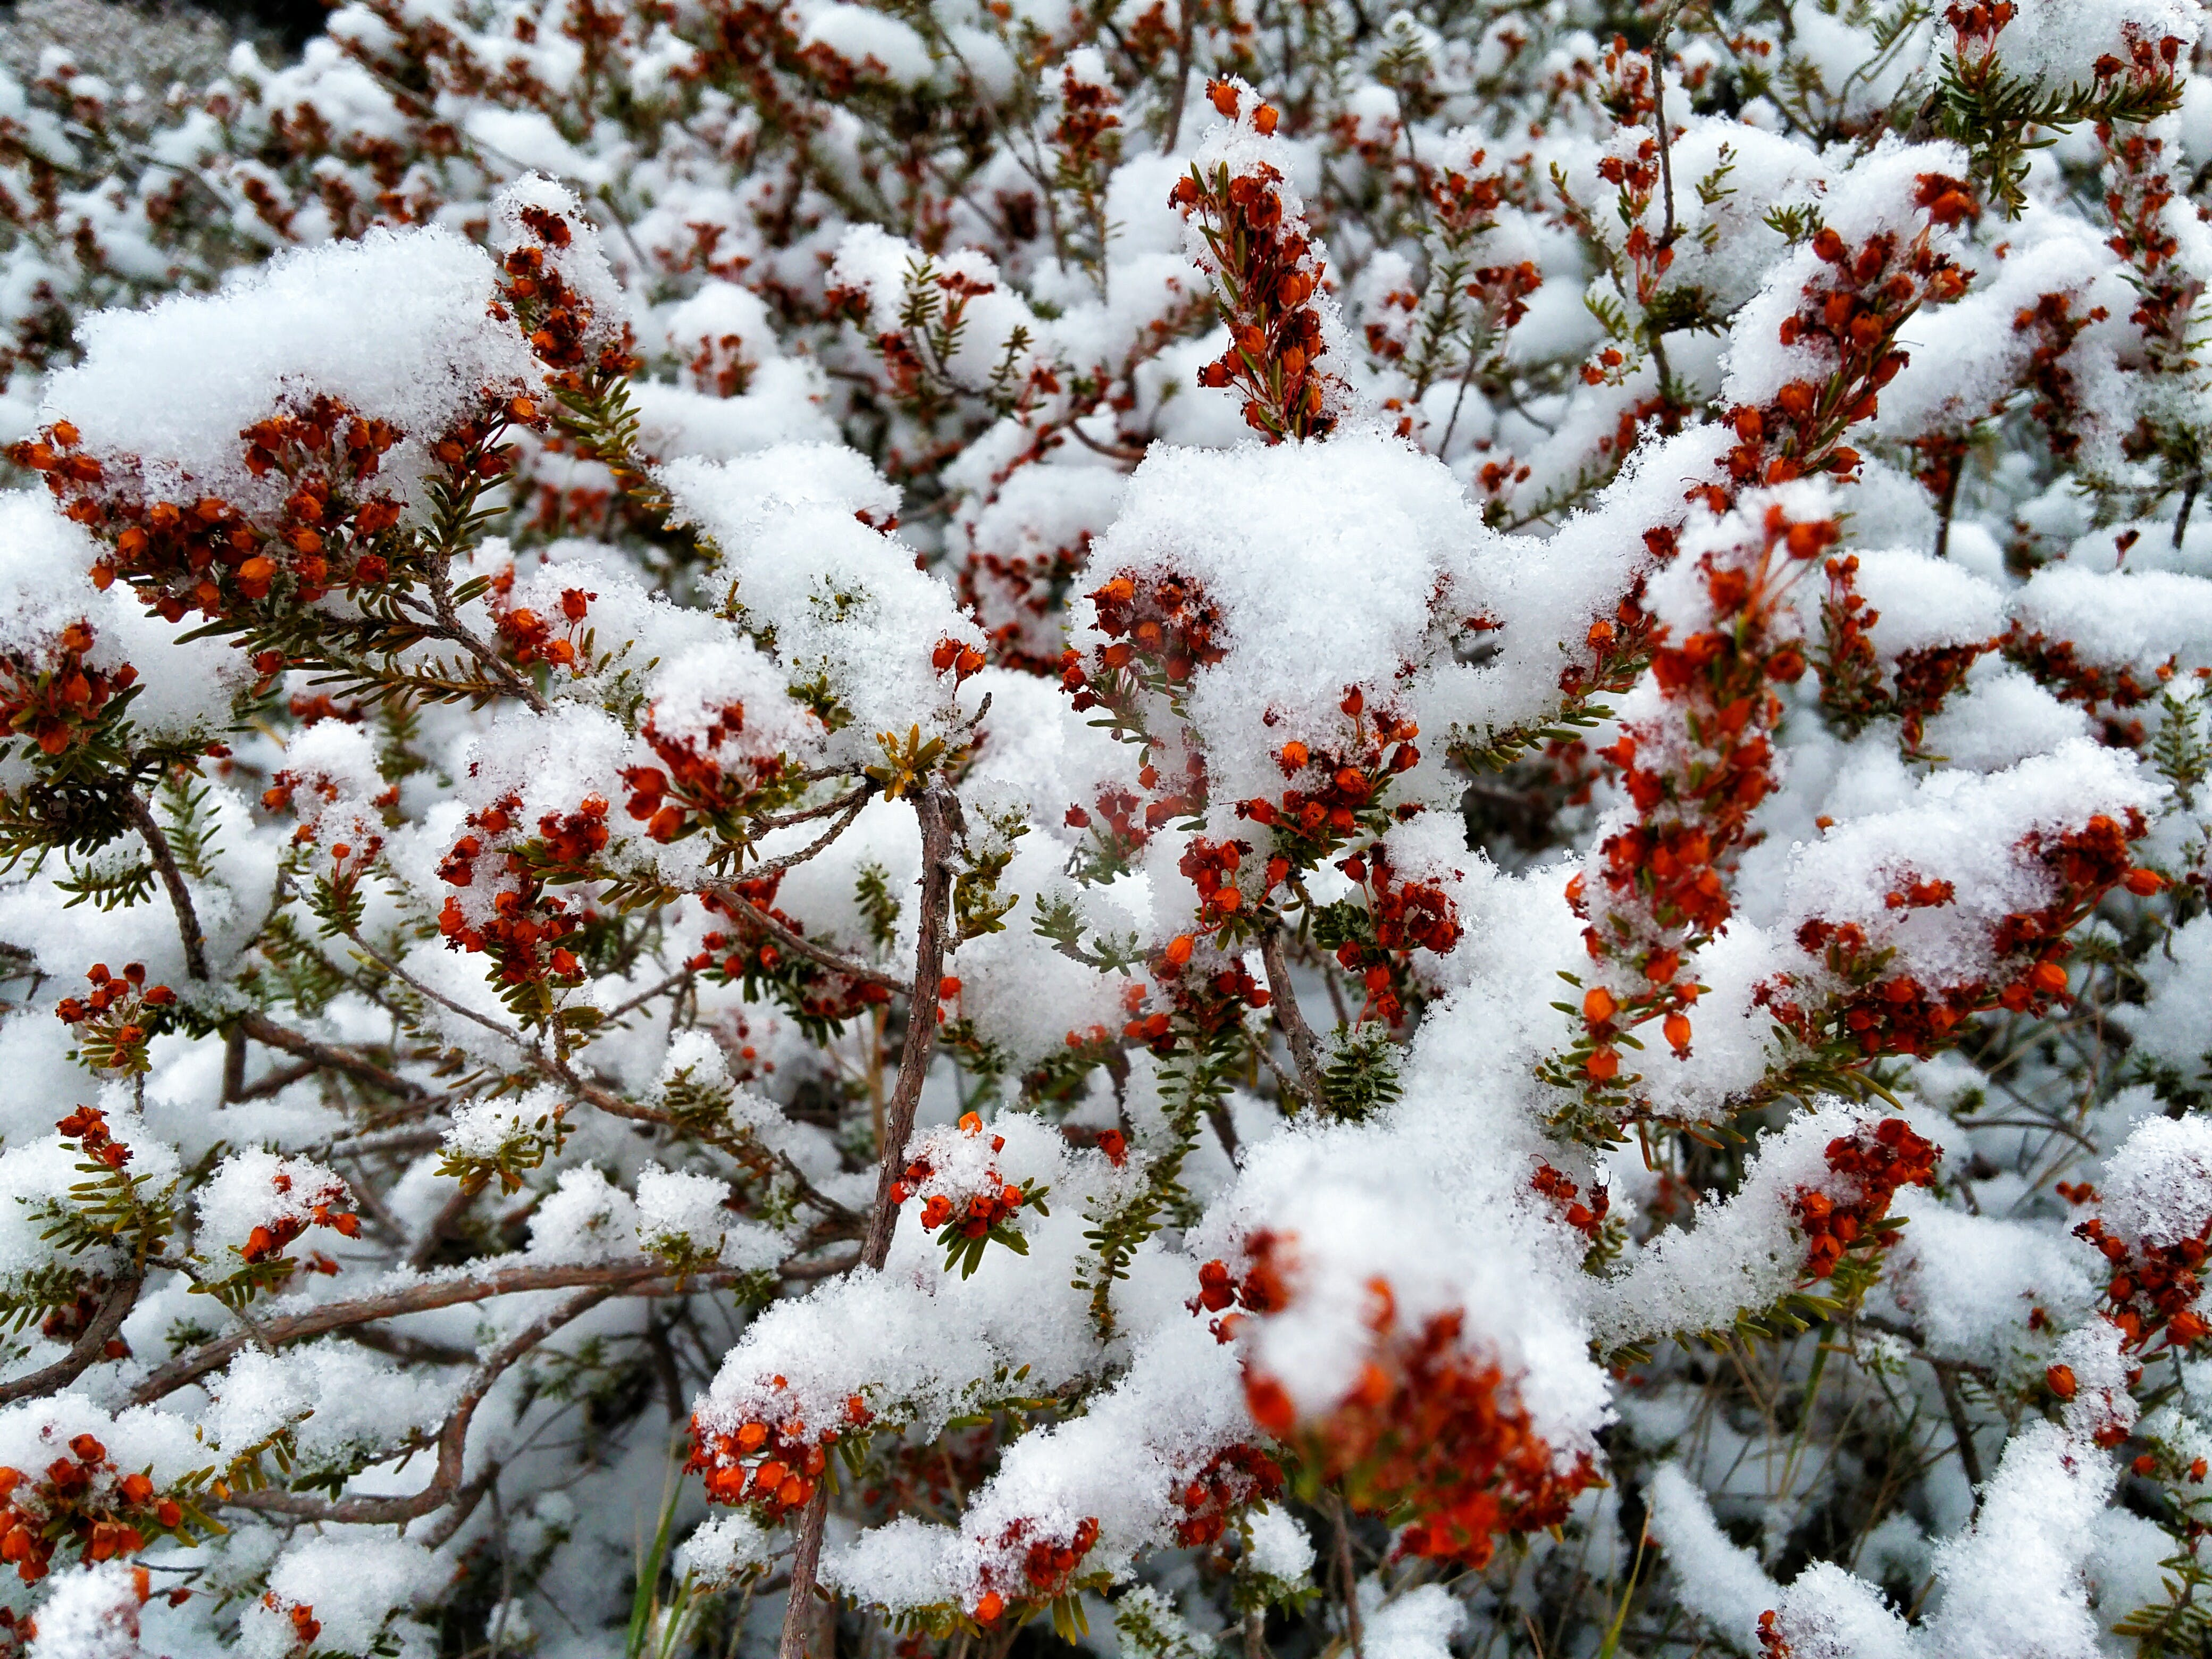 Free stock photo of red flowers, snow flowers